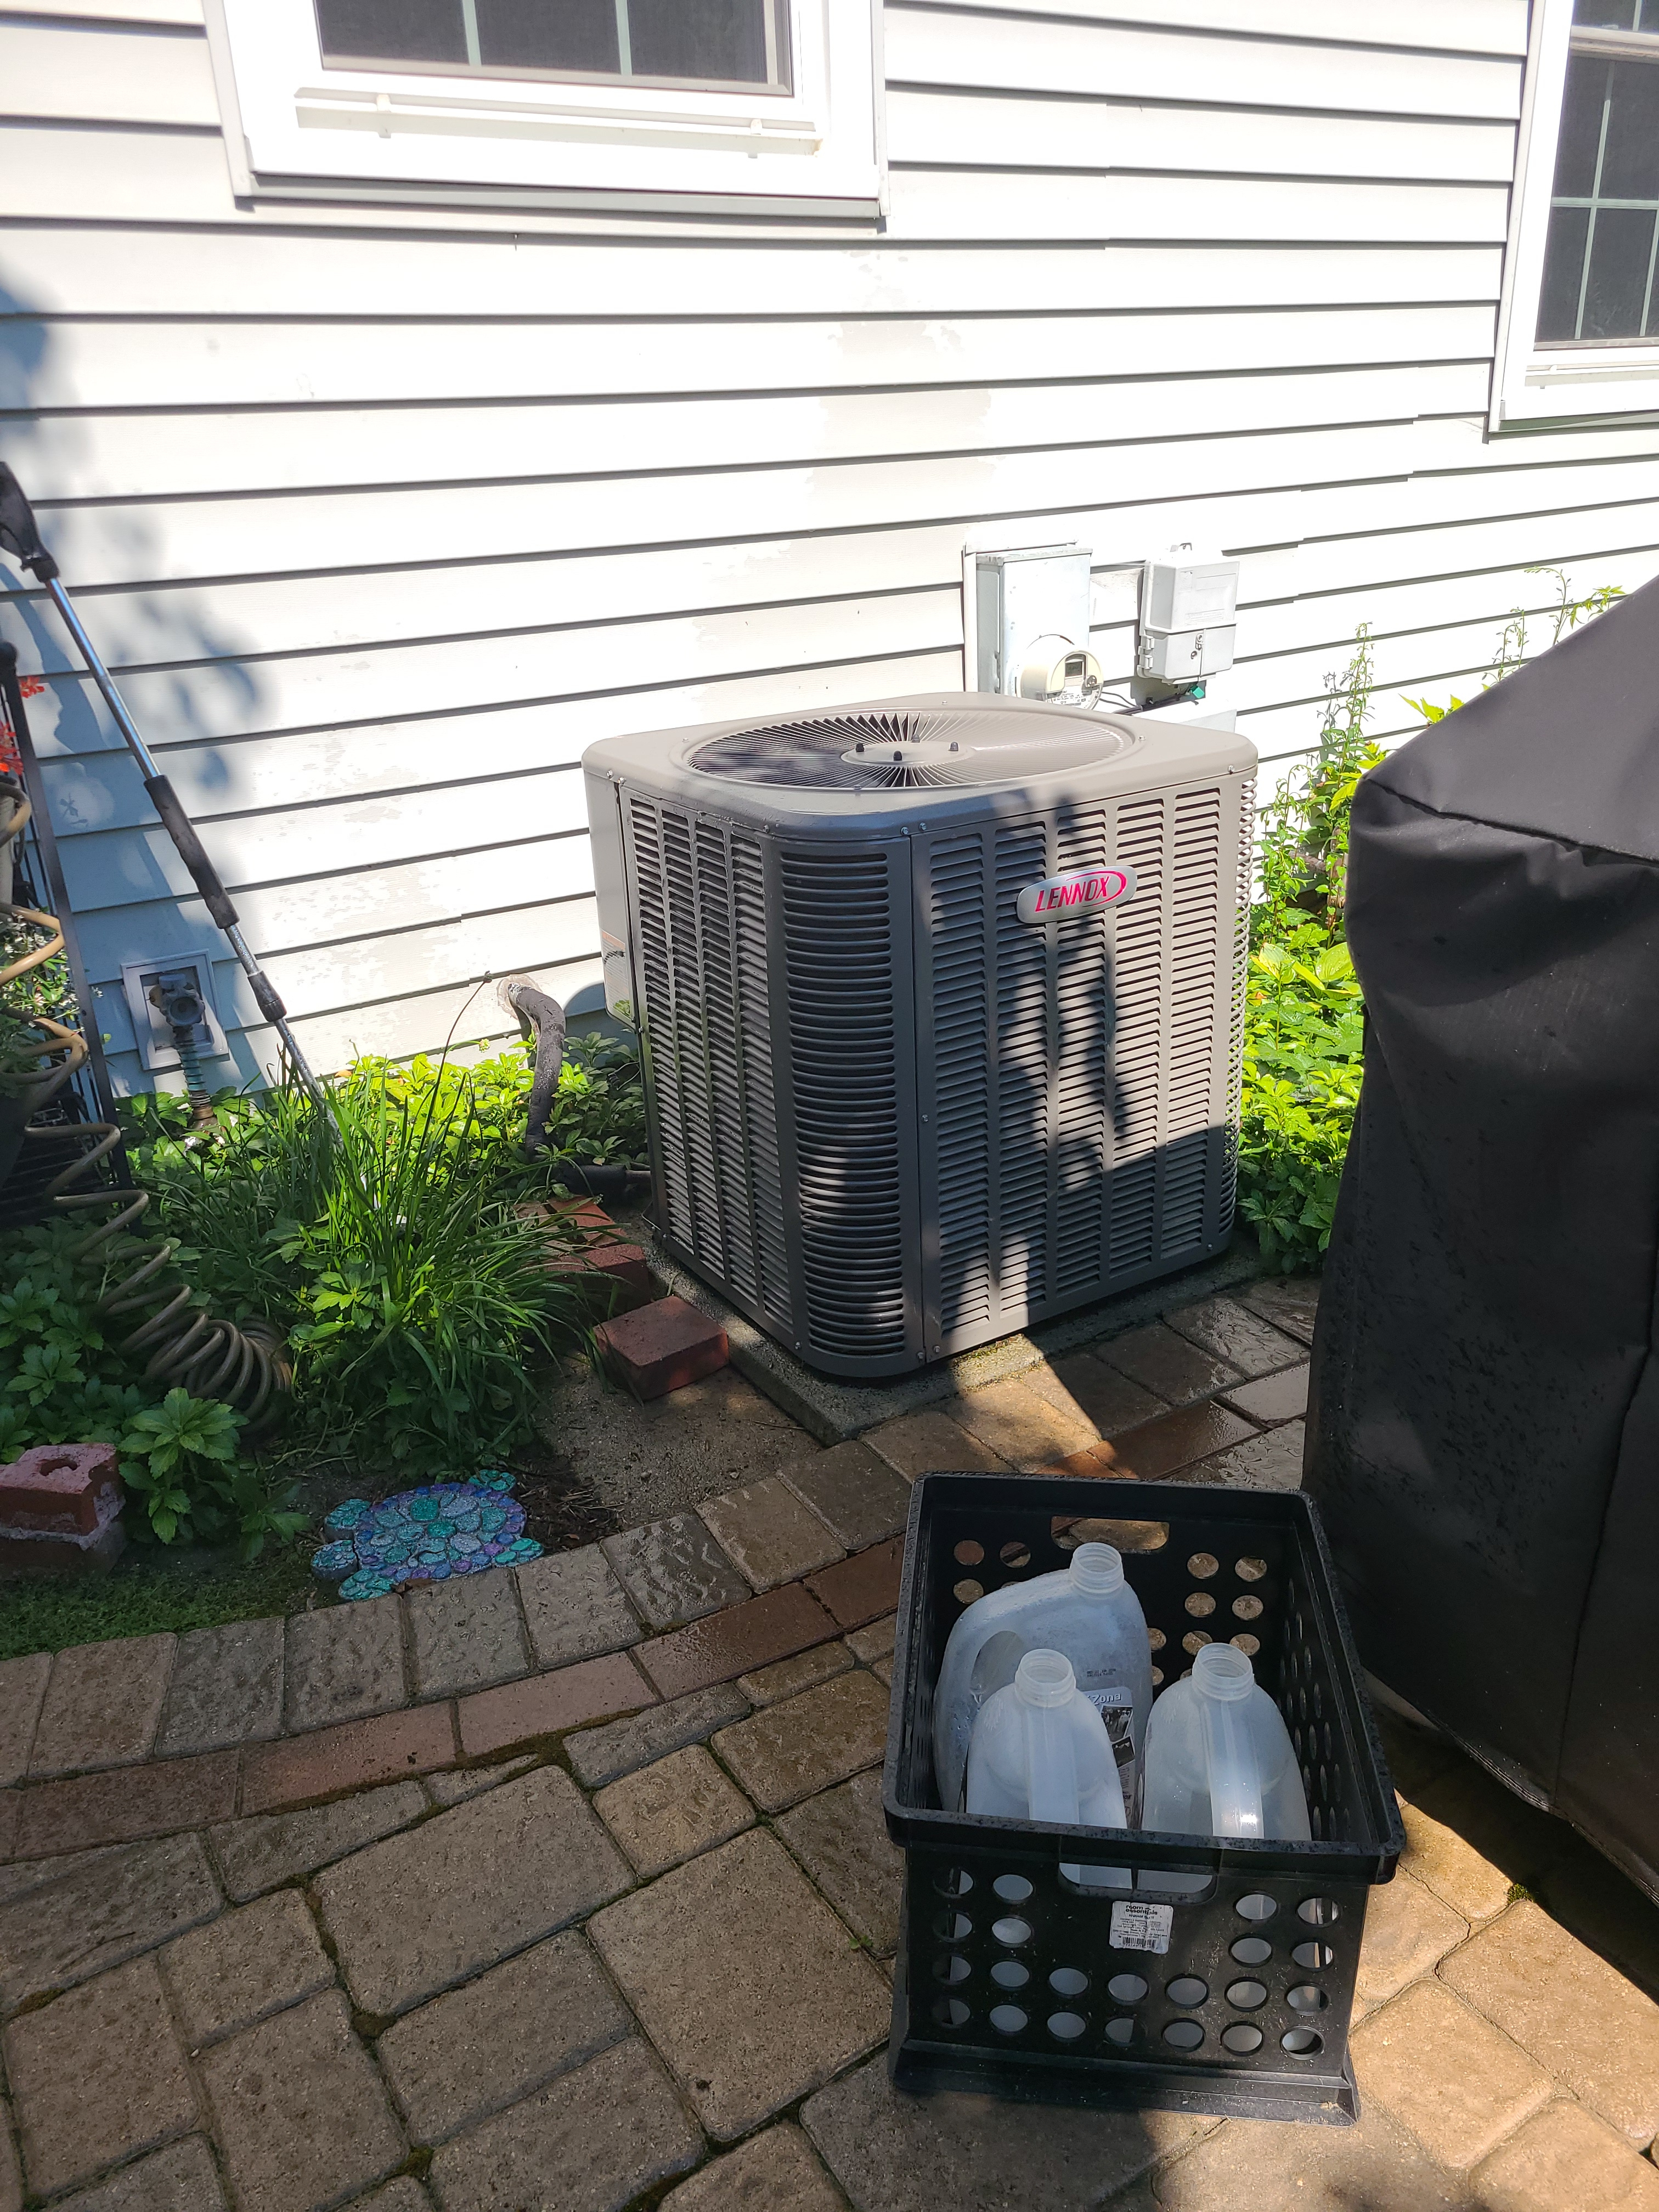 Make sure your Lennox keeps you cool this summer and schedule a maintenance with American Weathermakers today.